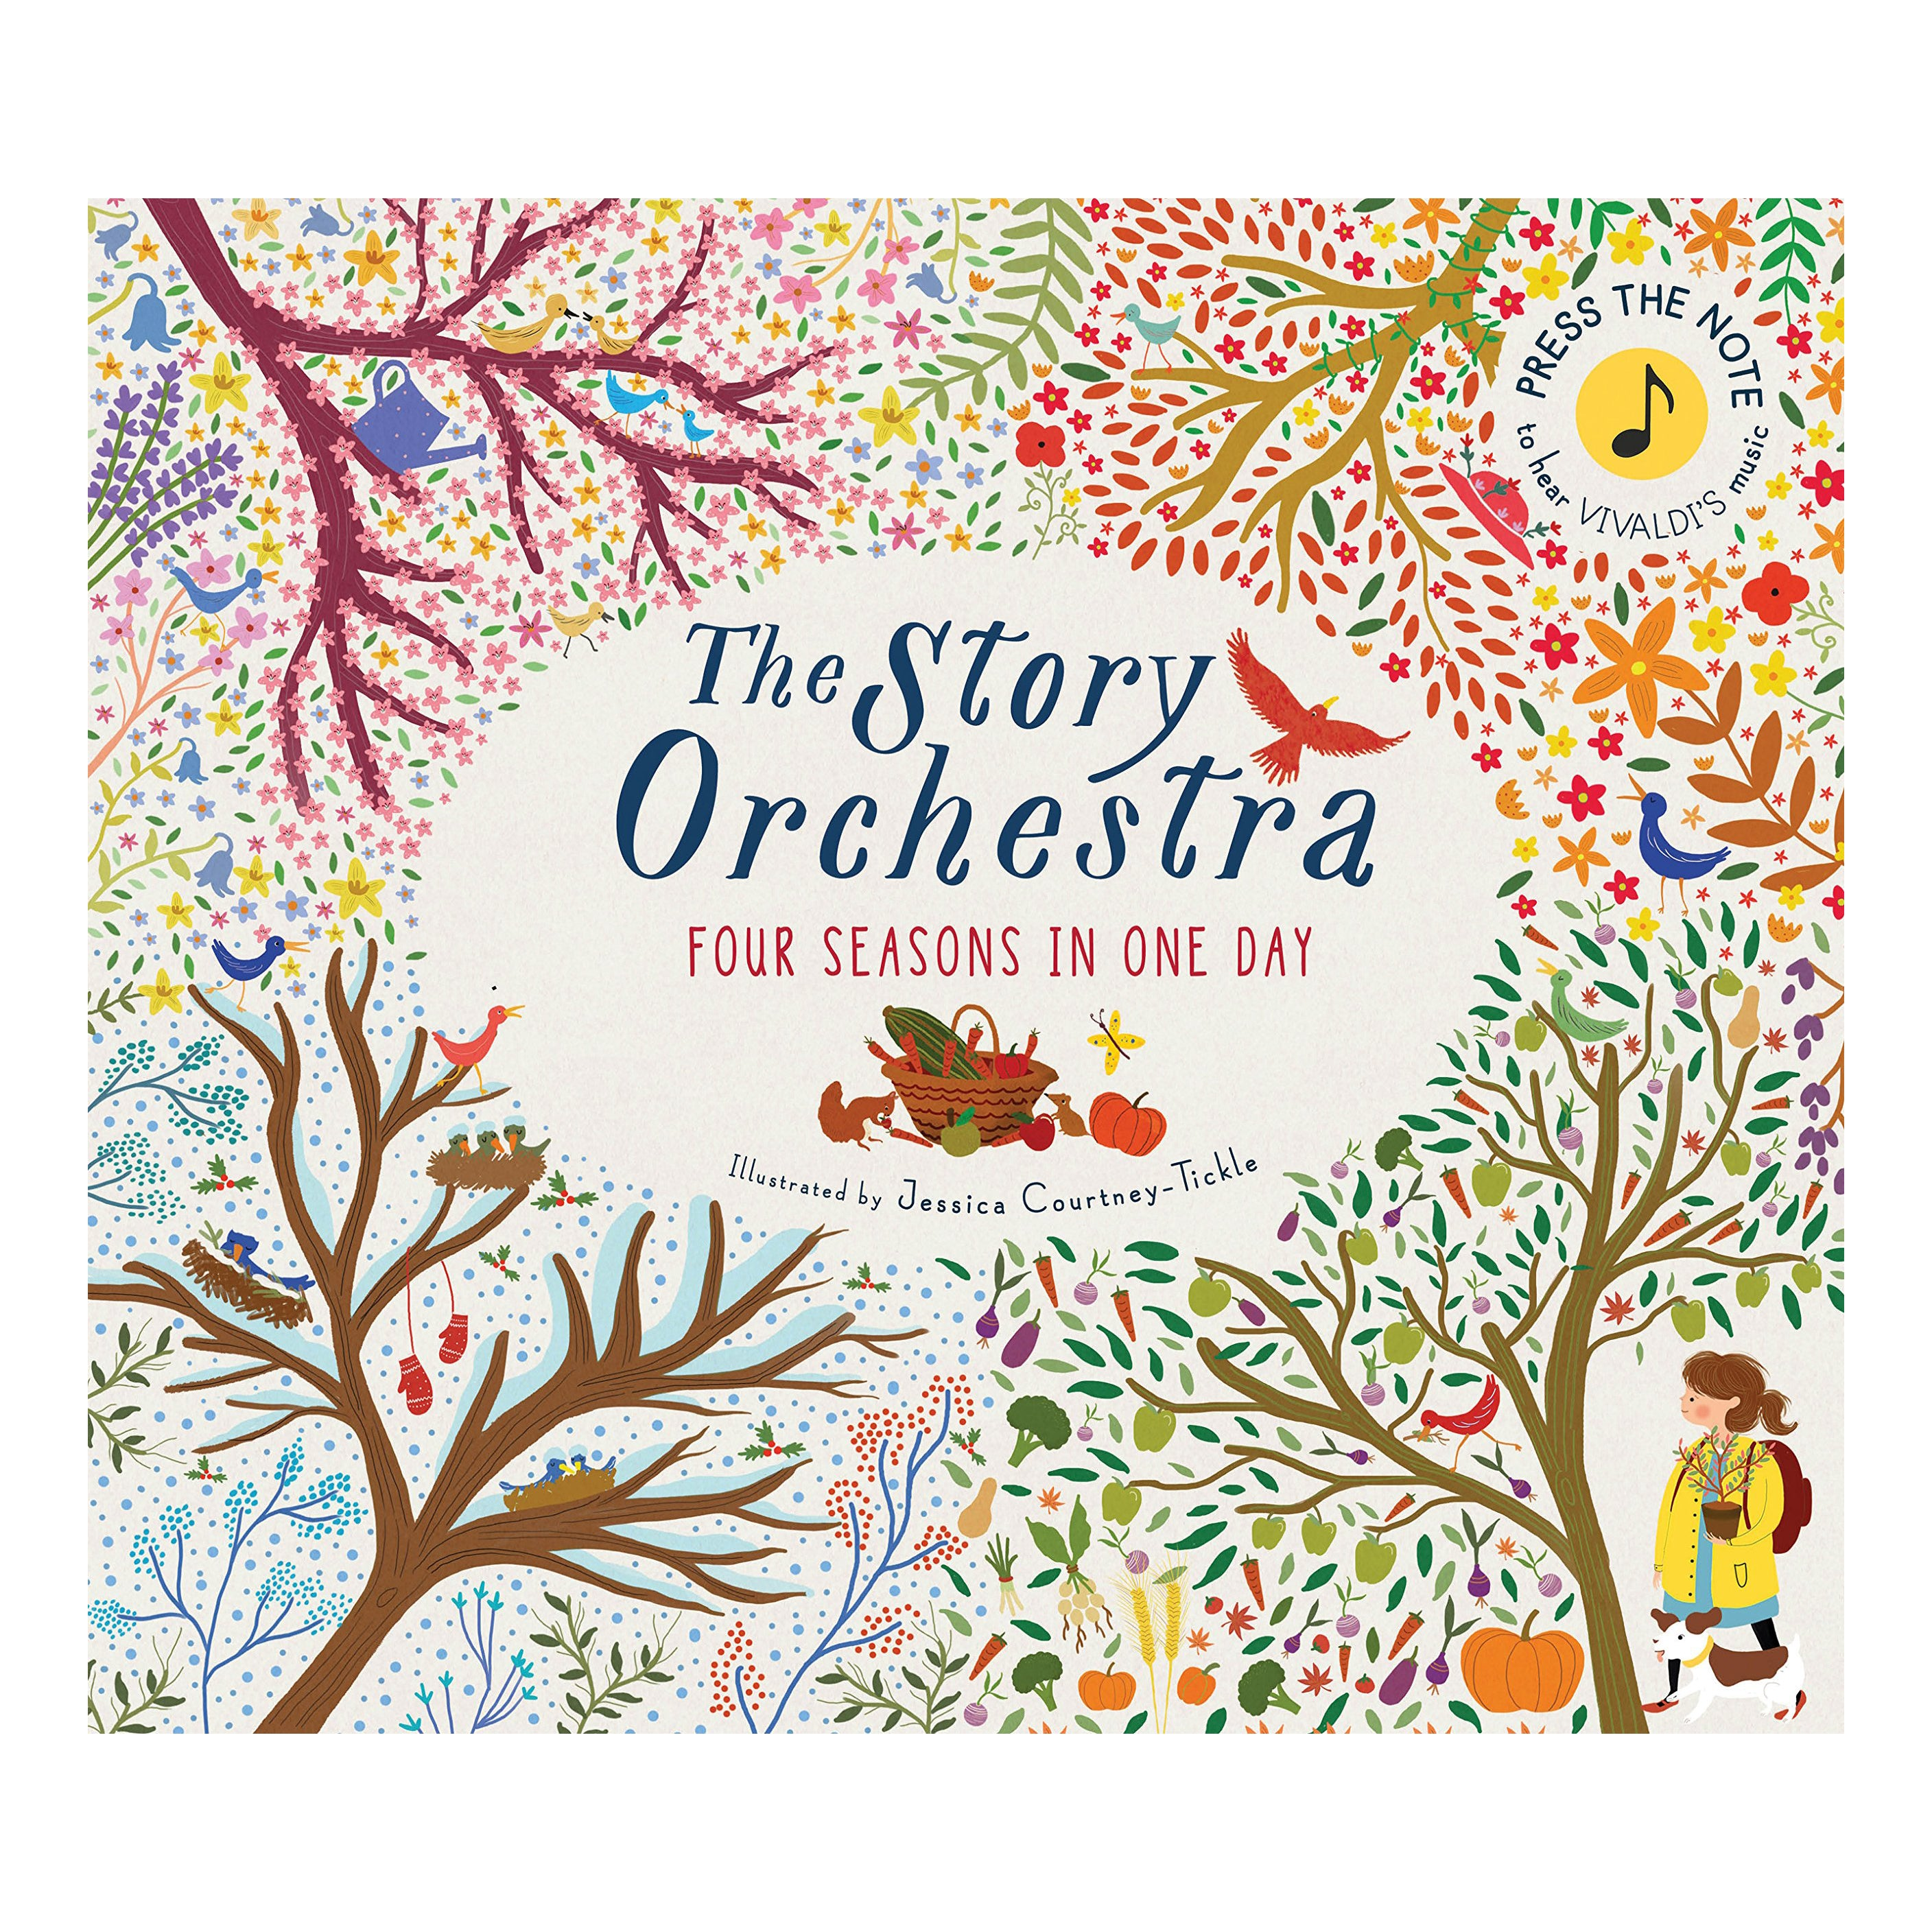 The Story Orchestra - Four Seasons In One Day Illustrated by Jessica Courtney-Tickle